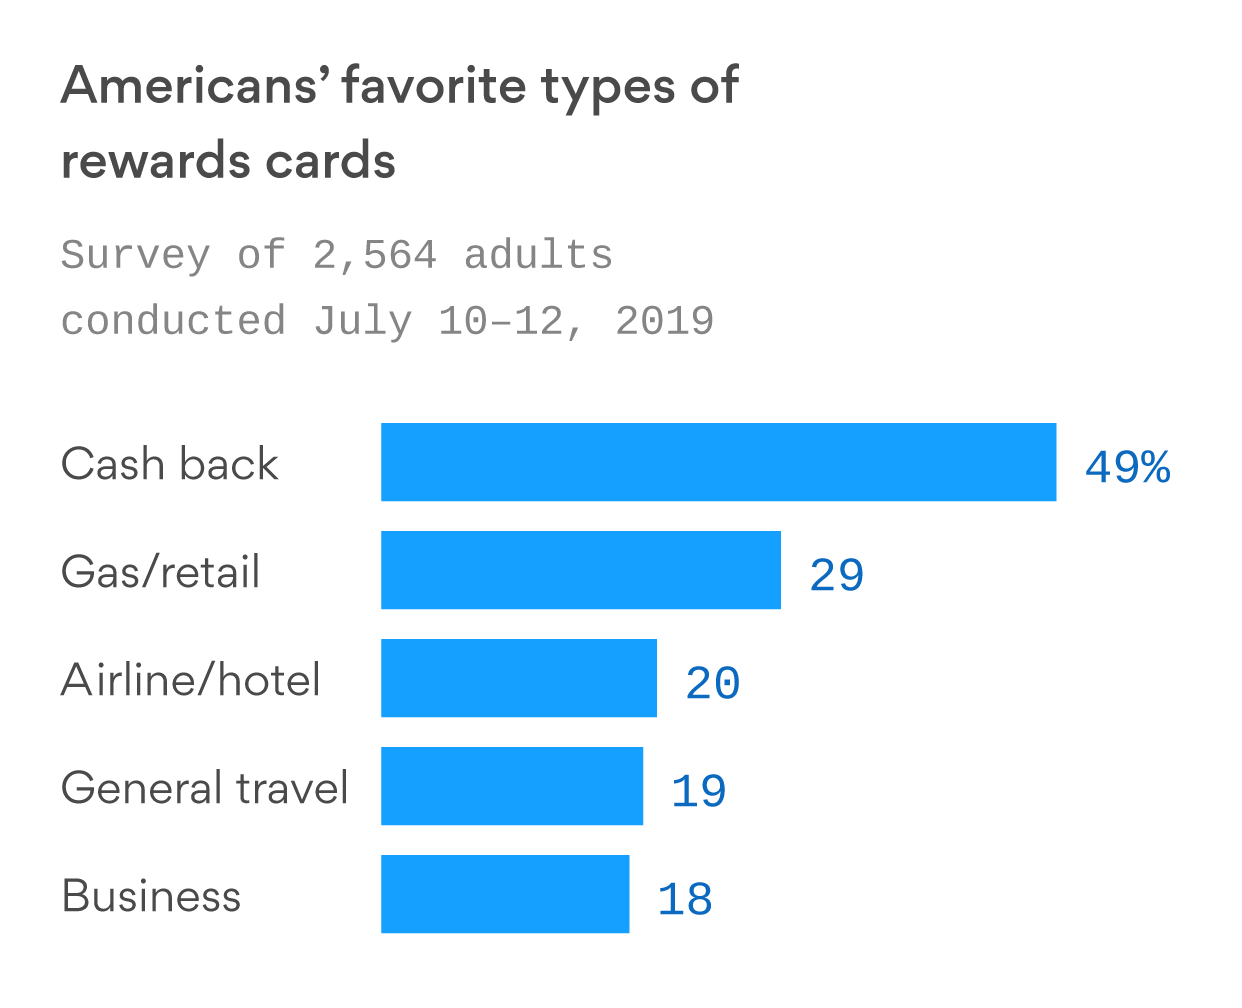 Cash back is the preferred credit card perk for most Americans